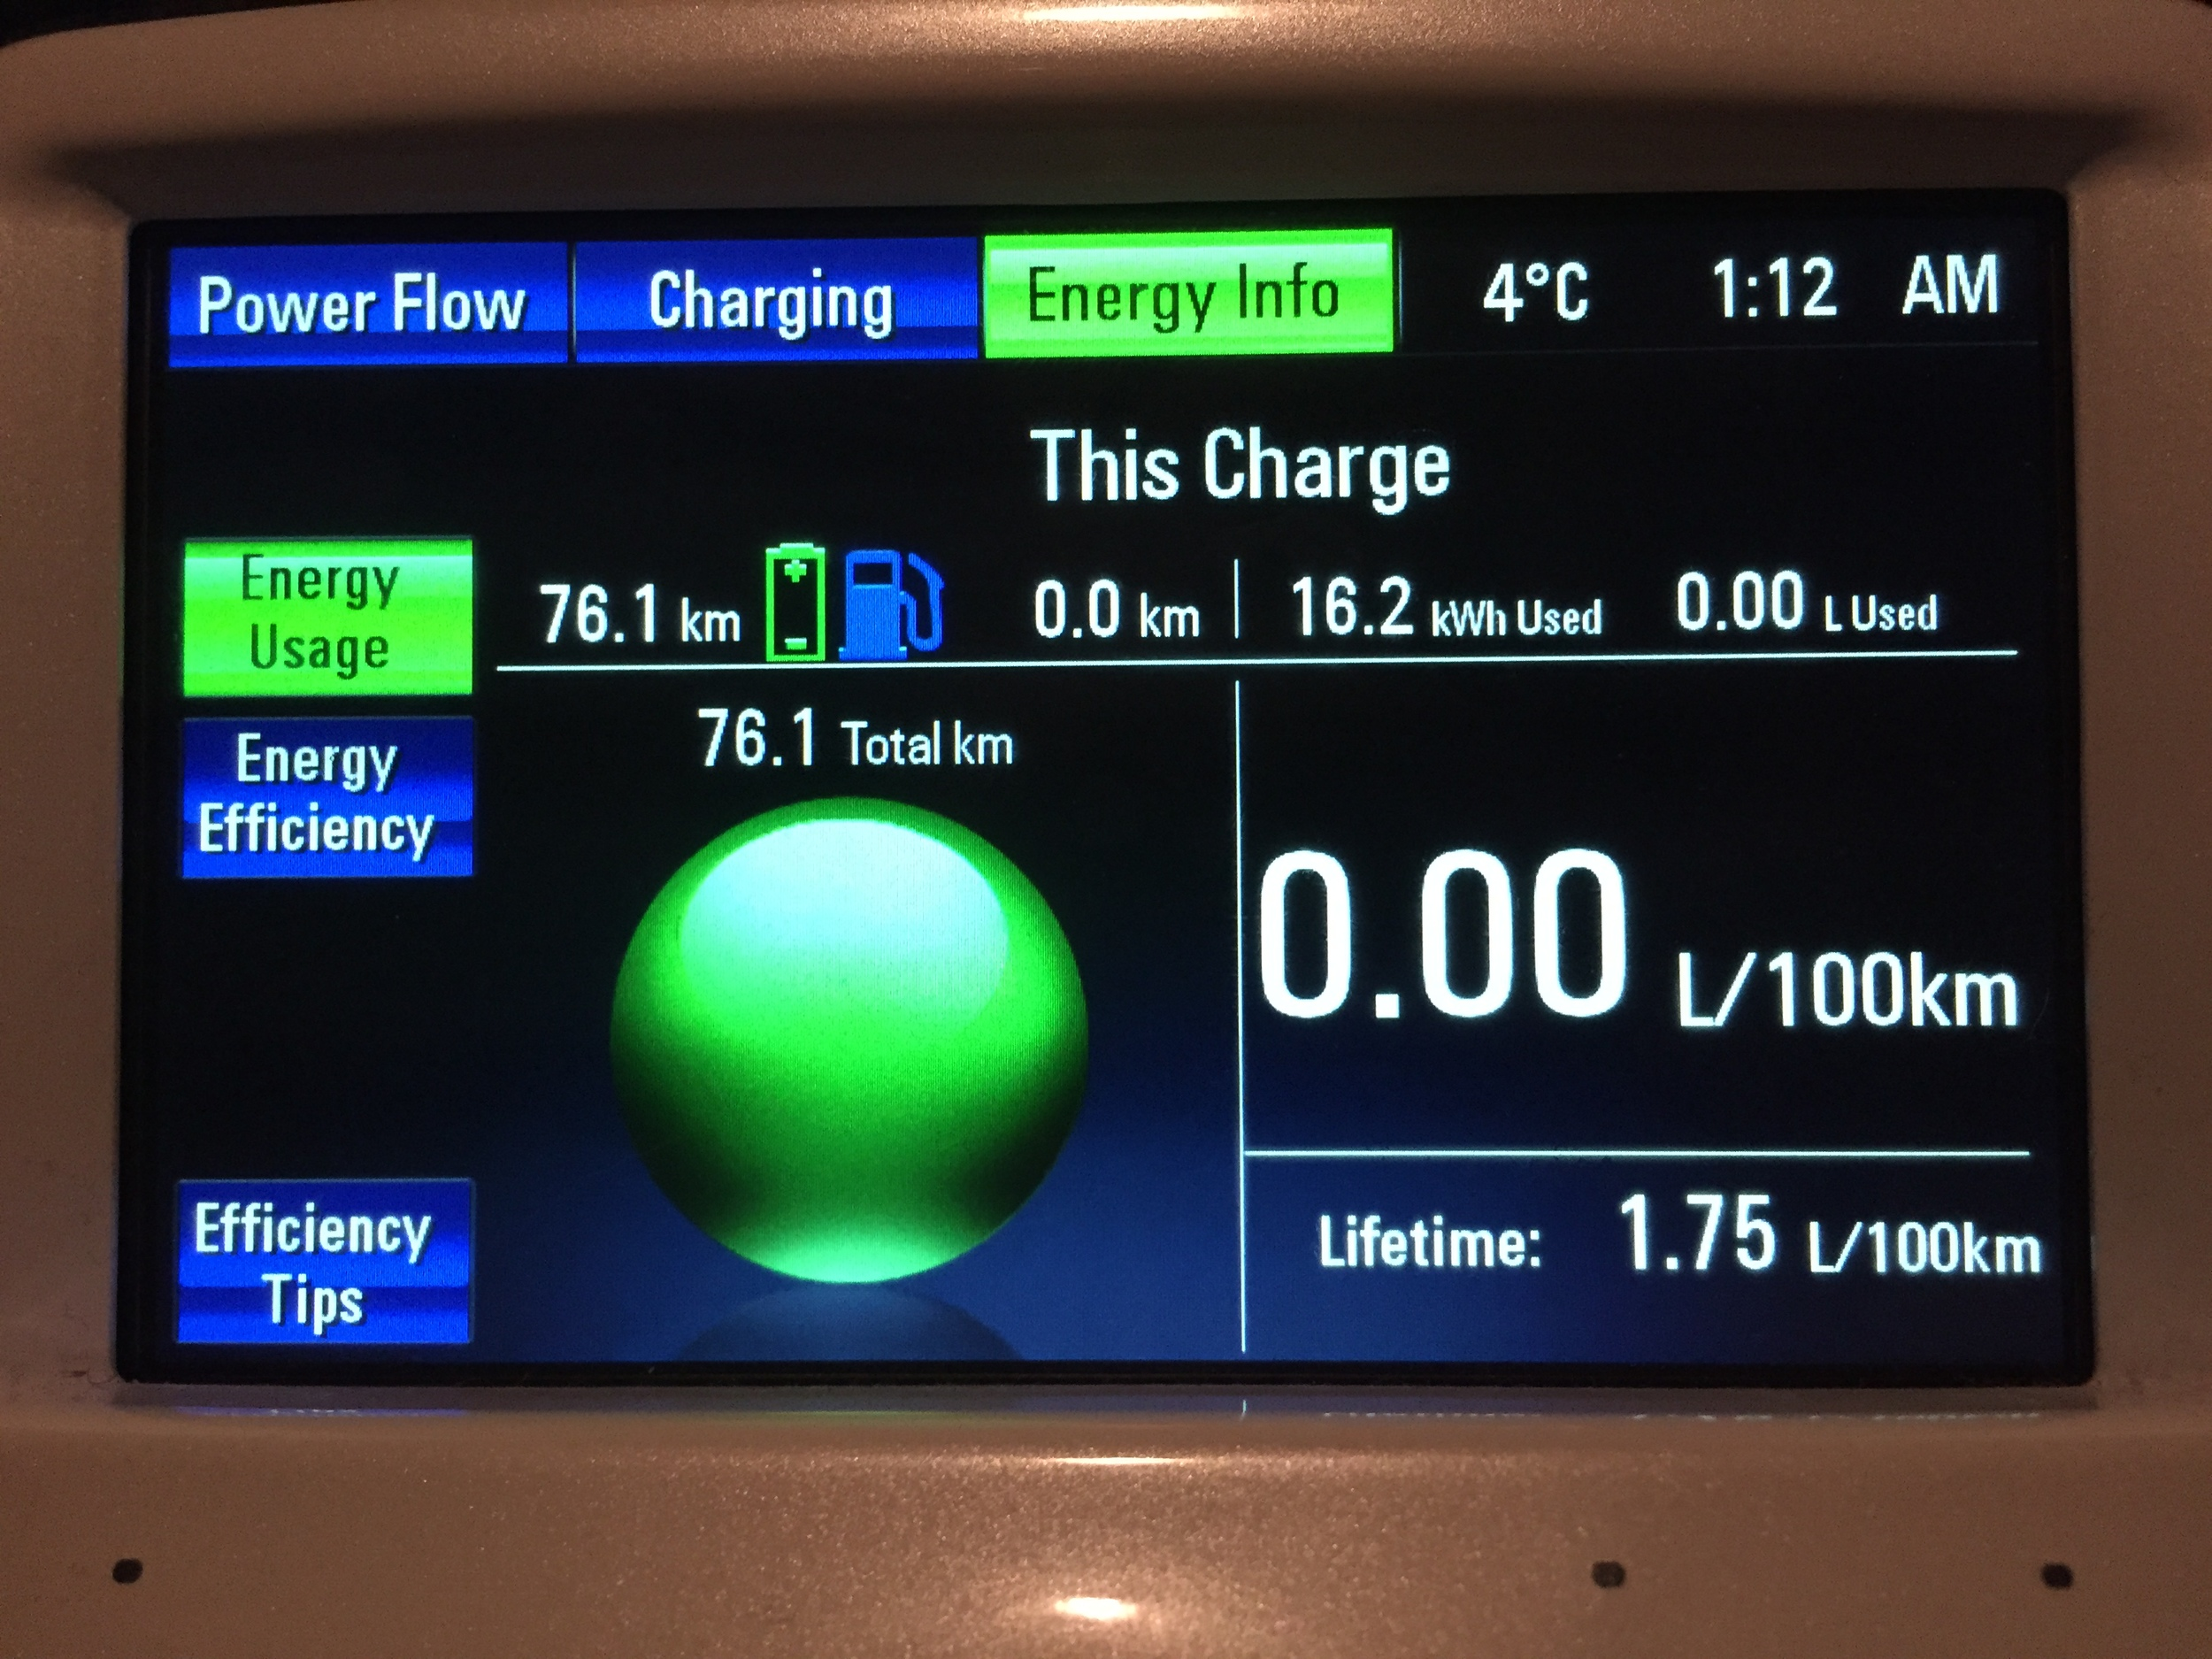 A typical day of Volt driving